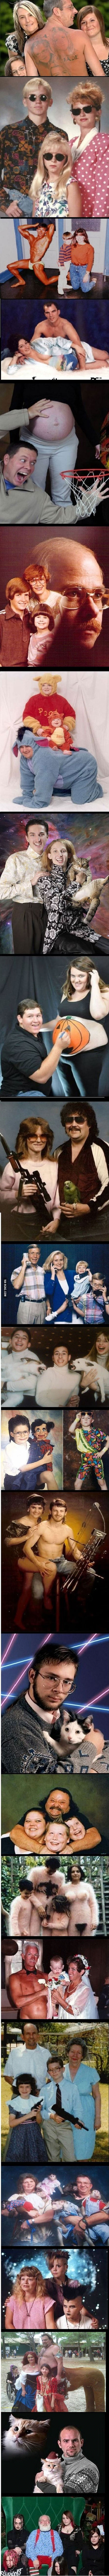 Just some awkward family photos...seemed like a good idea at the time